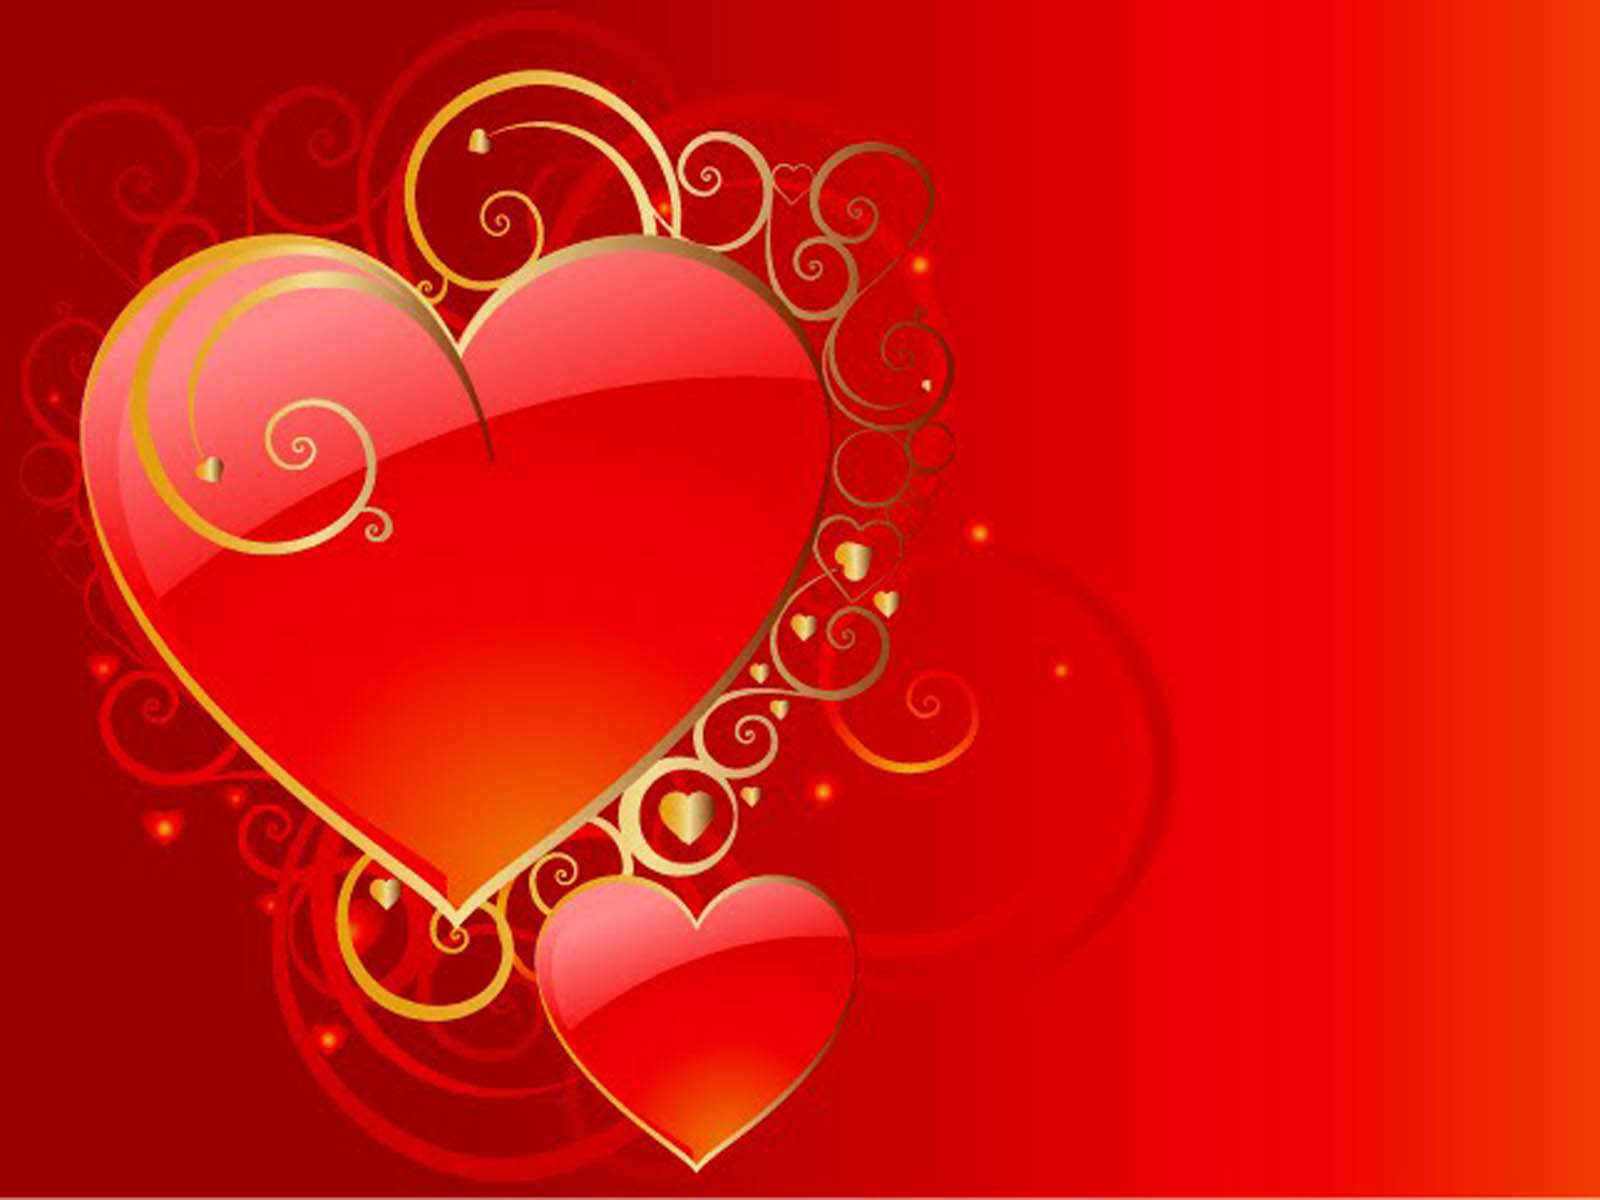 wallpapers: Love Heart Wallpapers